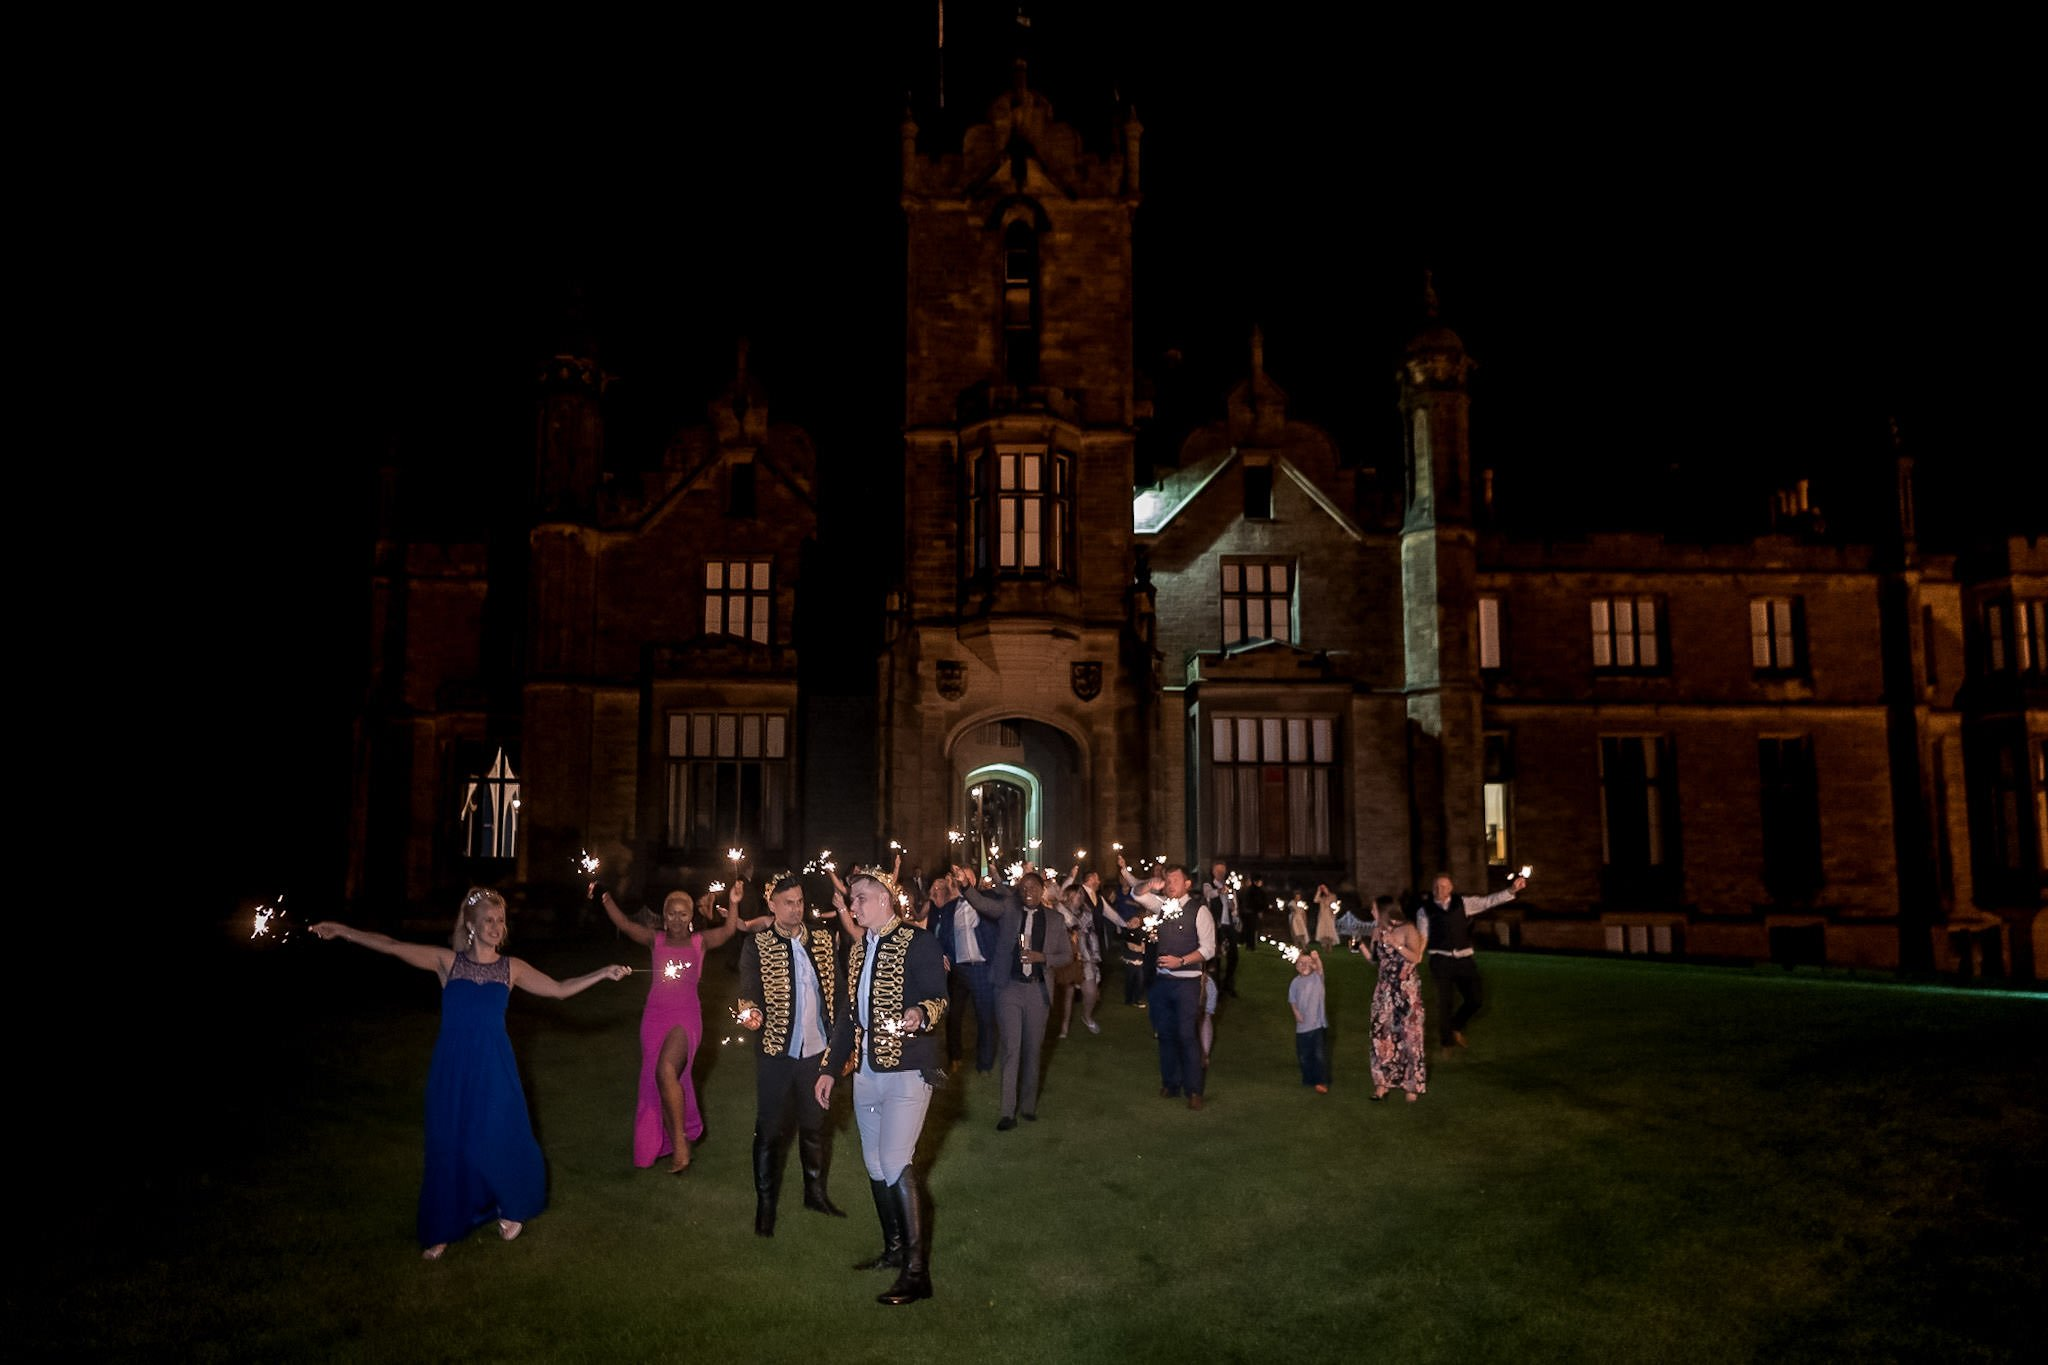 Allerton Castle Knaresborough Hutchinson Weddings Photography groom and groom playing on the front lawn with sparklers castle behind night lit